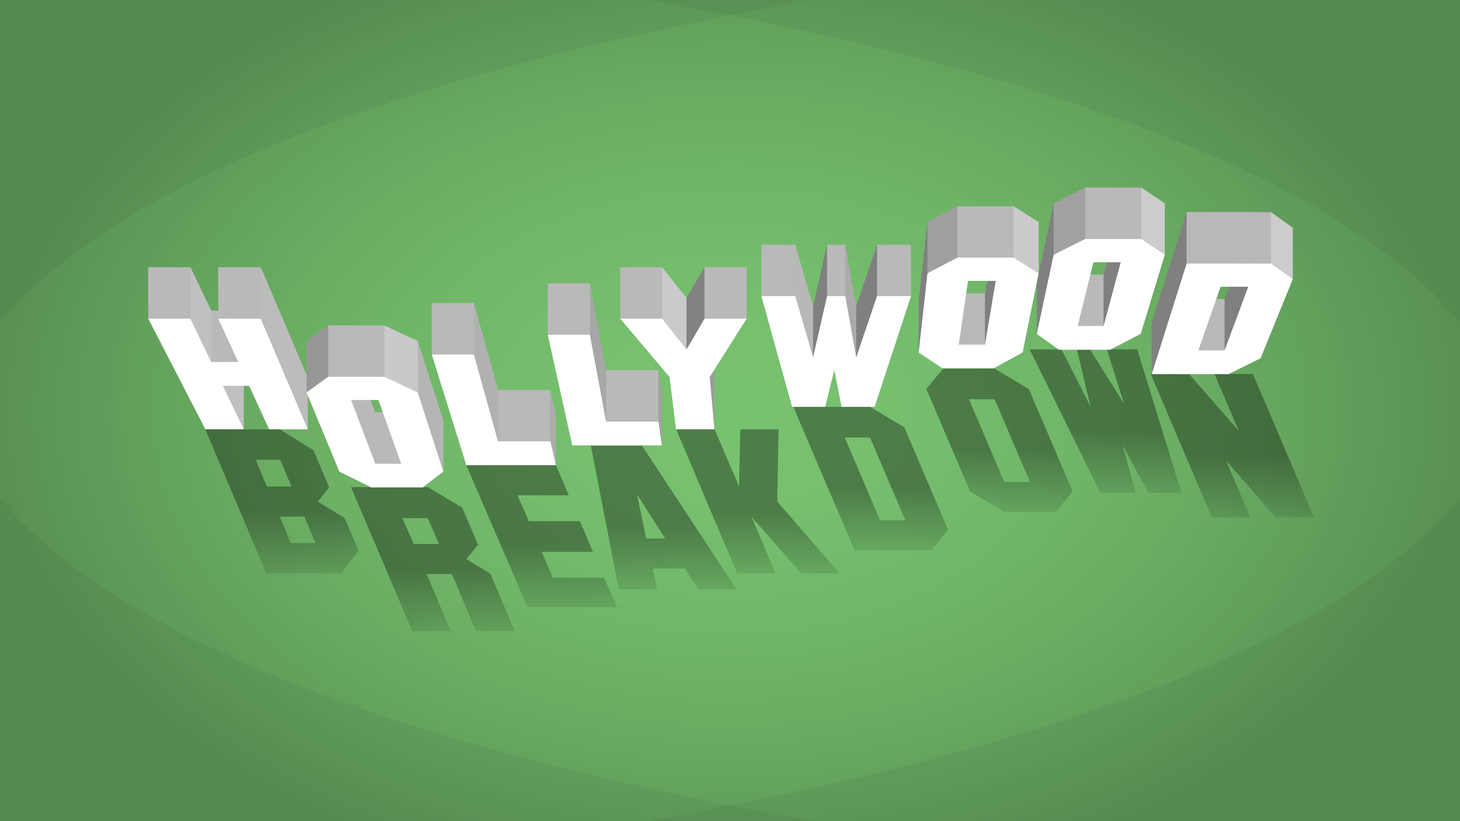 Kim and John discuss the Motion Picture Association of America's box office report and reflect on how movies have been performing less well over the years...